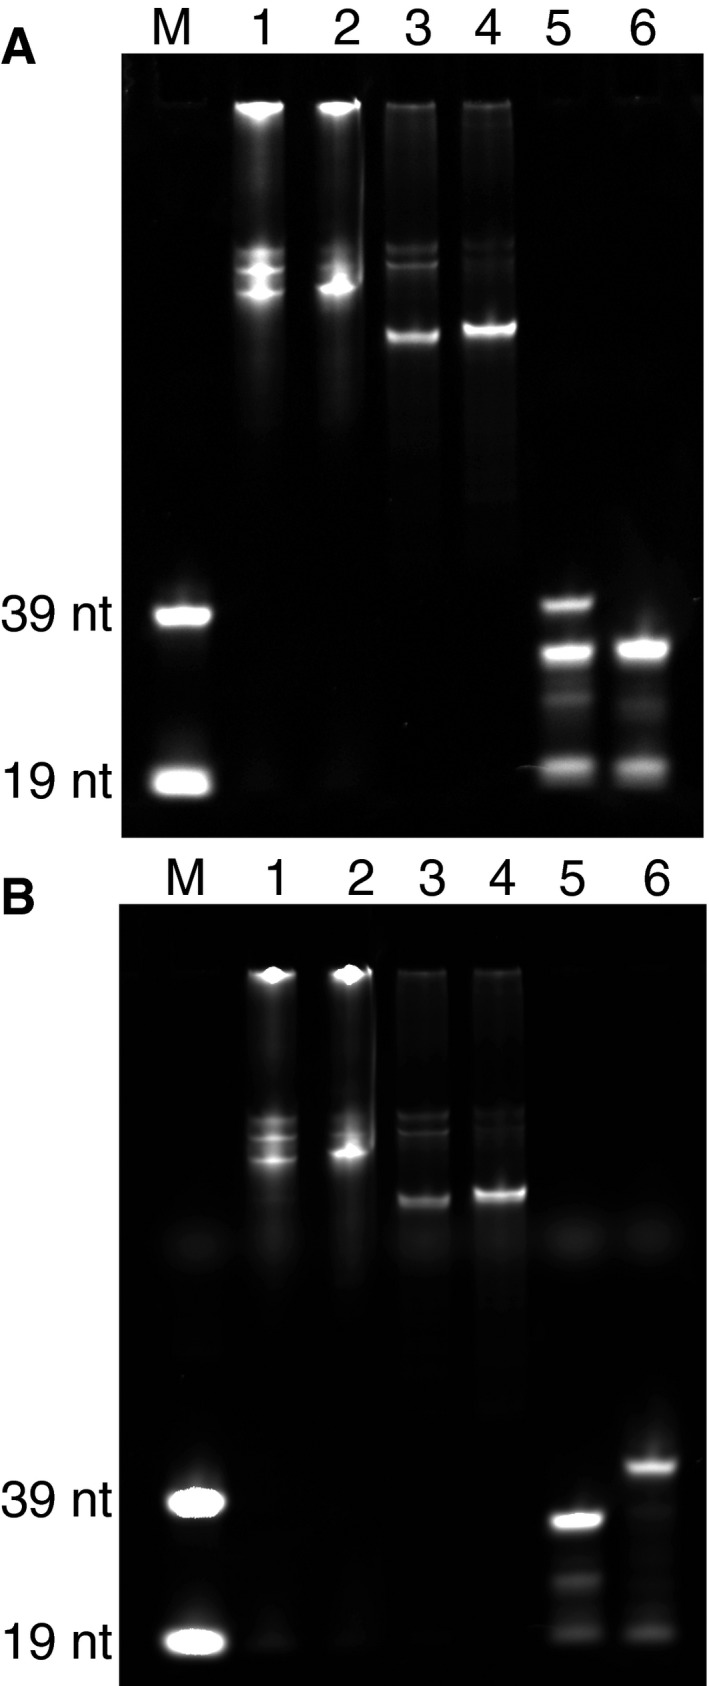 Products from the different steps of the FISH probe production protocol Products were run on a 10% polyacrylamide gel and imaged in (A) Cy3 and (B) Cy5 channels. (M): Cy3‐ and Cy5‐labeled 39‐nt and 19‐nt ssDNA probes were used as size references. (1) and (2): the initial fluorescent elongation product for the two rounds of FISH probe generation, respectively. (3) and (4): SchI digestion of the elongation products for rounds one and two, respectively. (5) and (6): Lambda exonuclease treatment and gel‐purified product for rounds one and two, respectively.